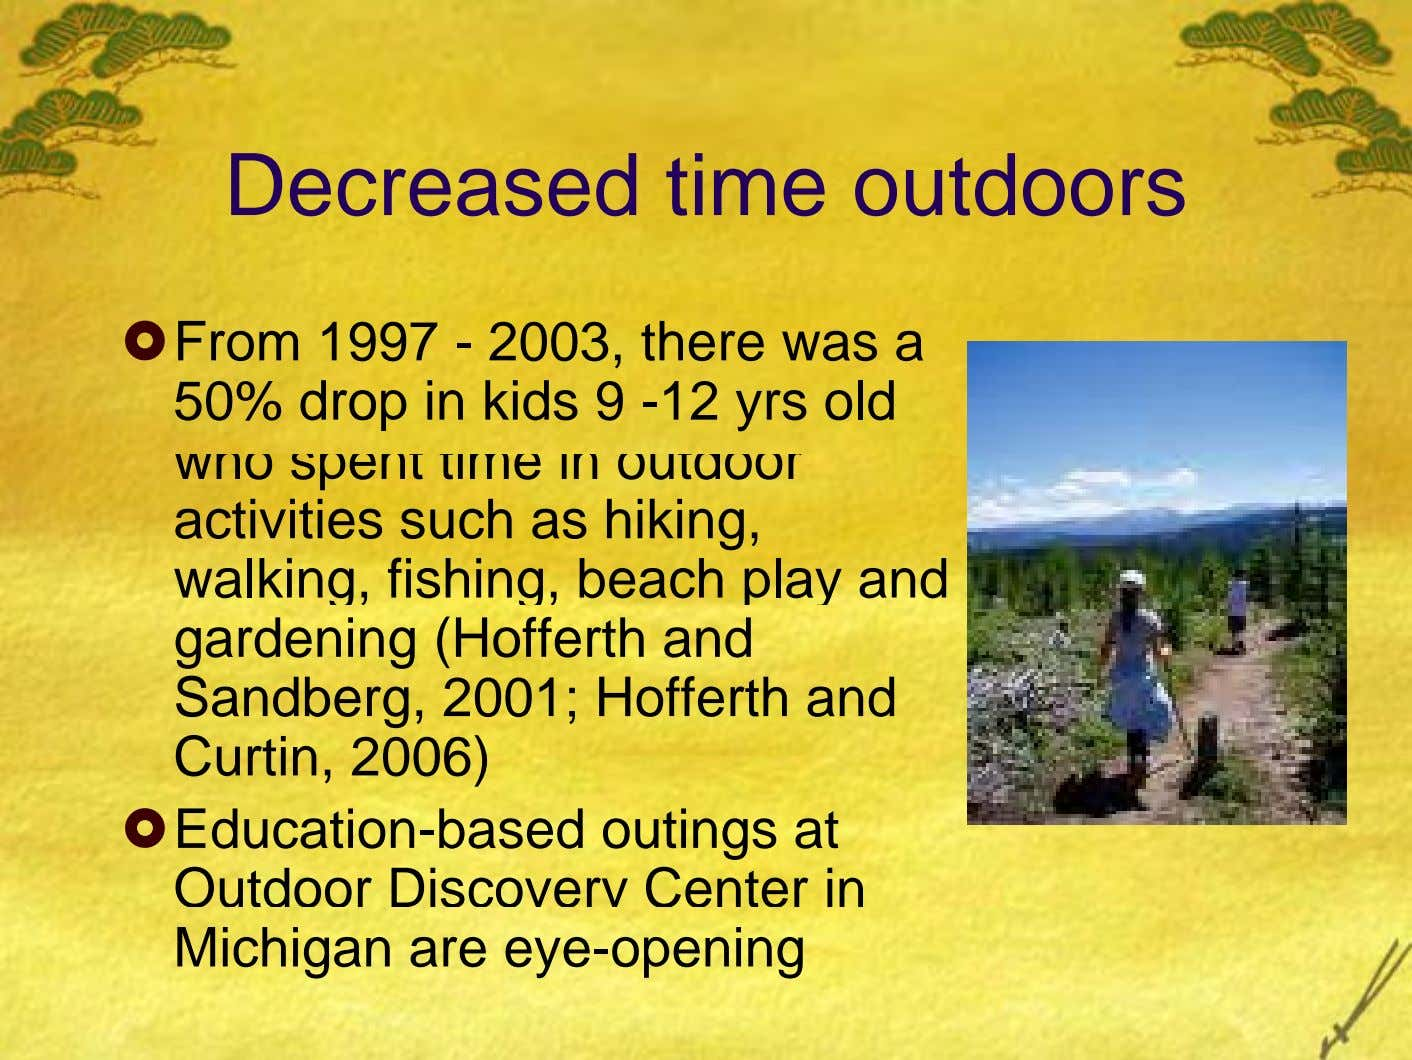 Decreased time outdoors From 1997 - 2003, there was a 50% drop in kids 9 -12